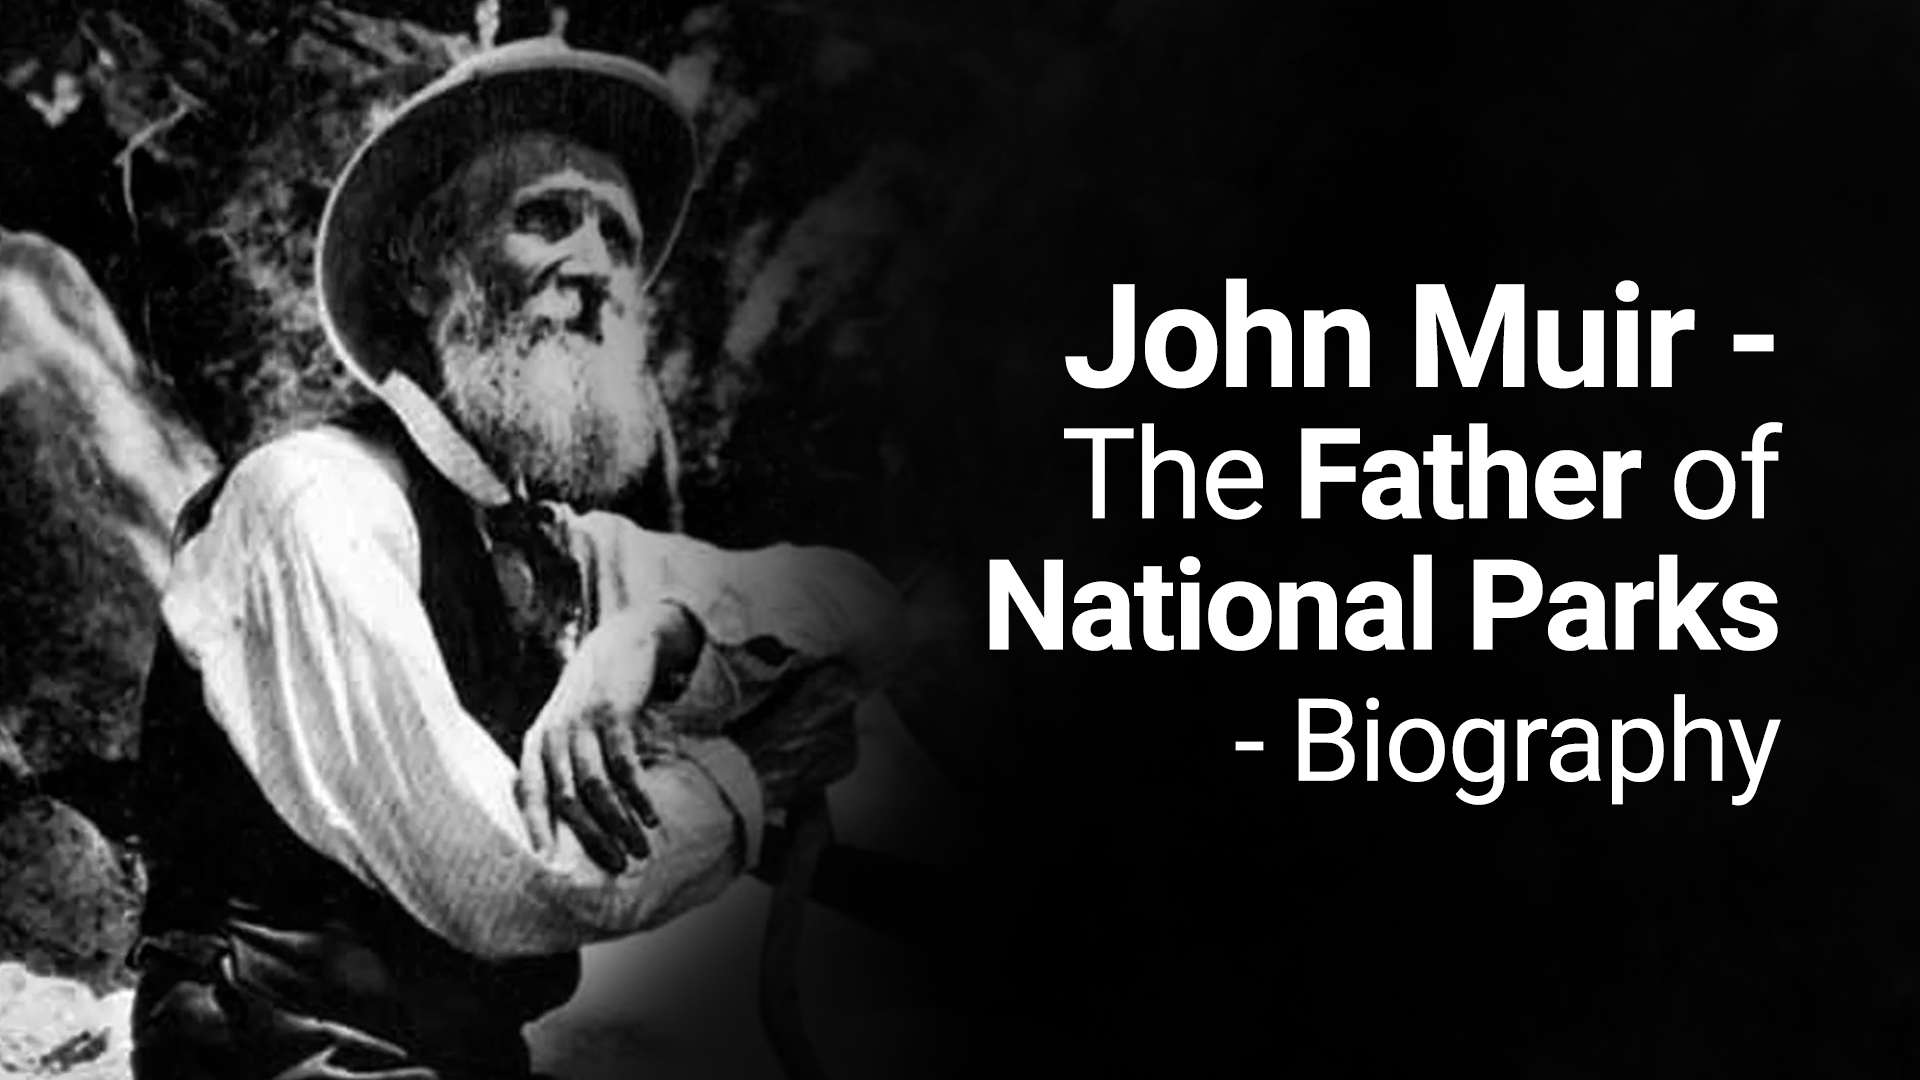 John Muir - the father of national parks biography